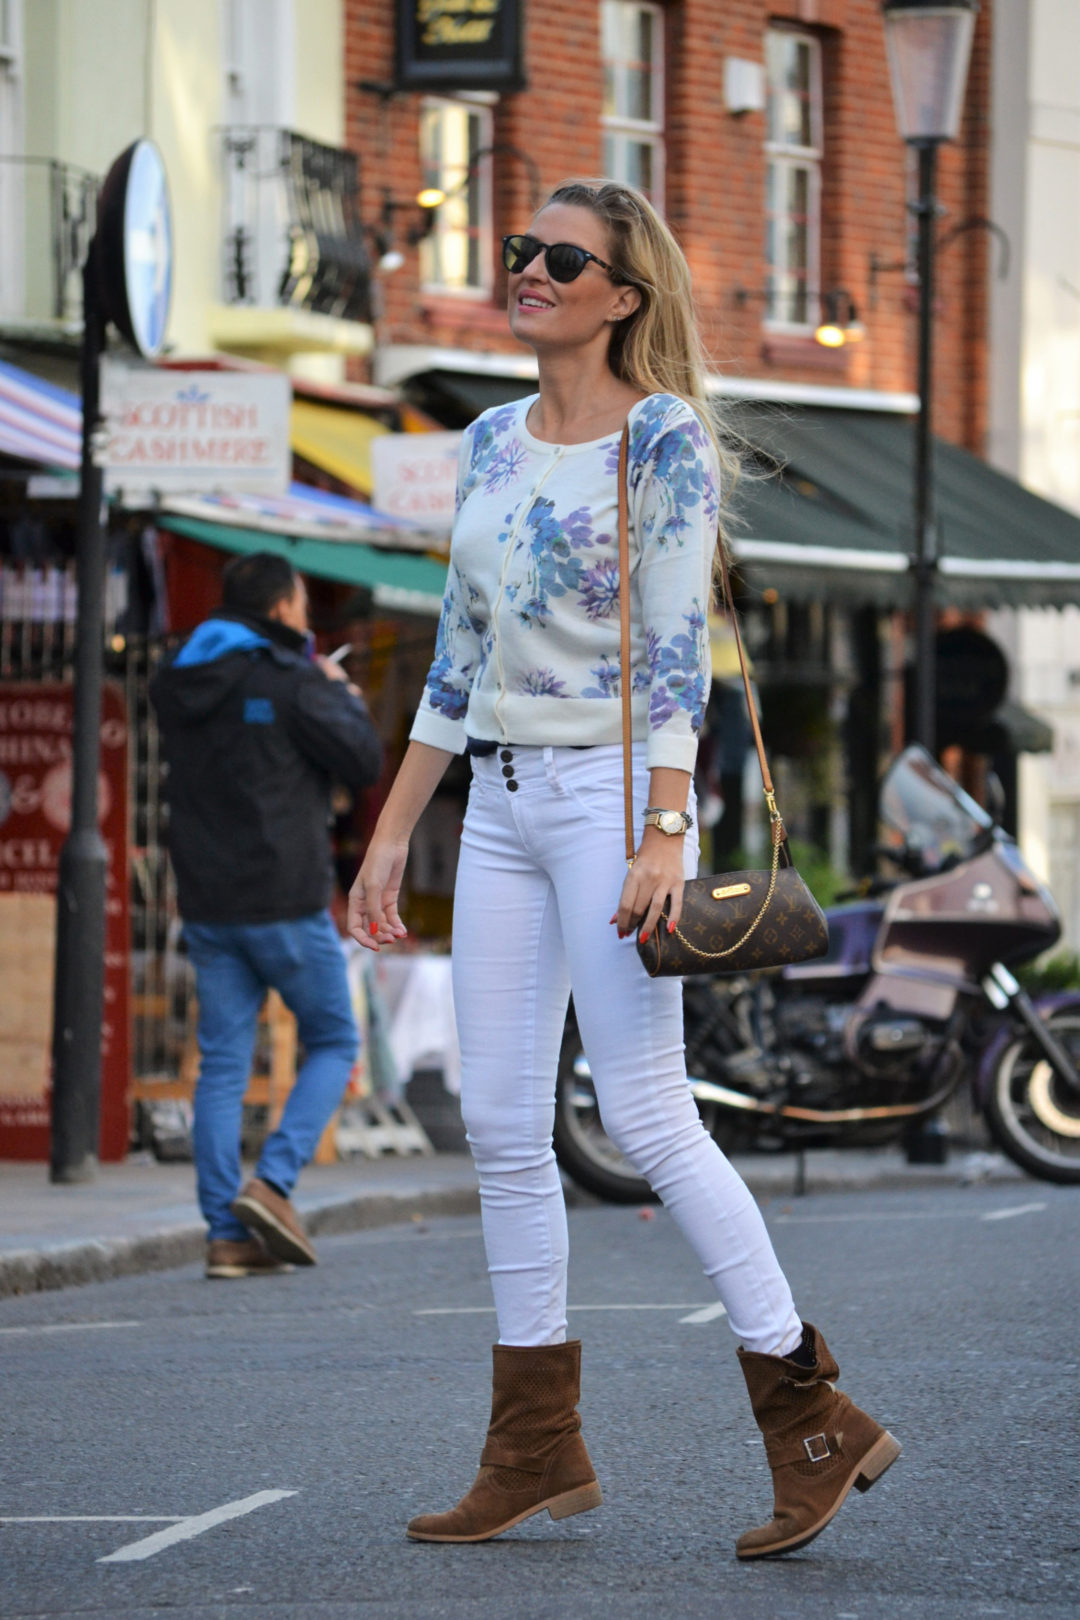 portobello_market_nothing_hill_lara_martin_gilarranz_bymyheels_london-15